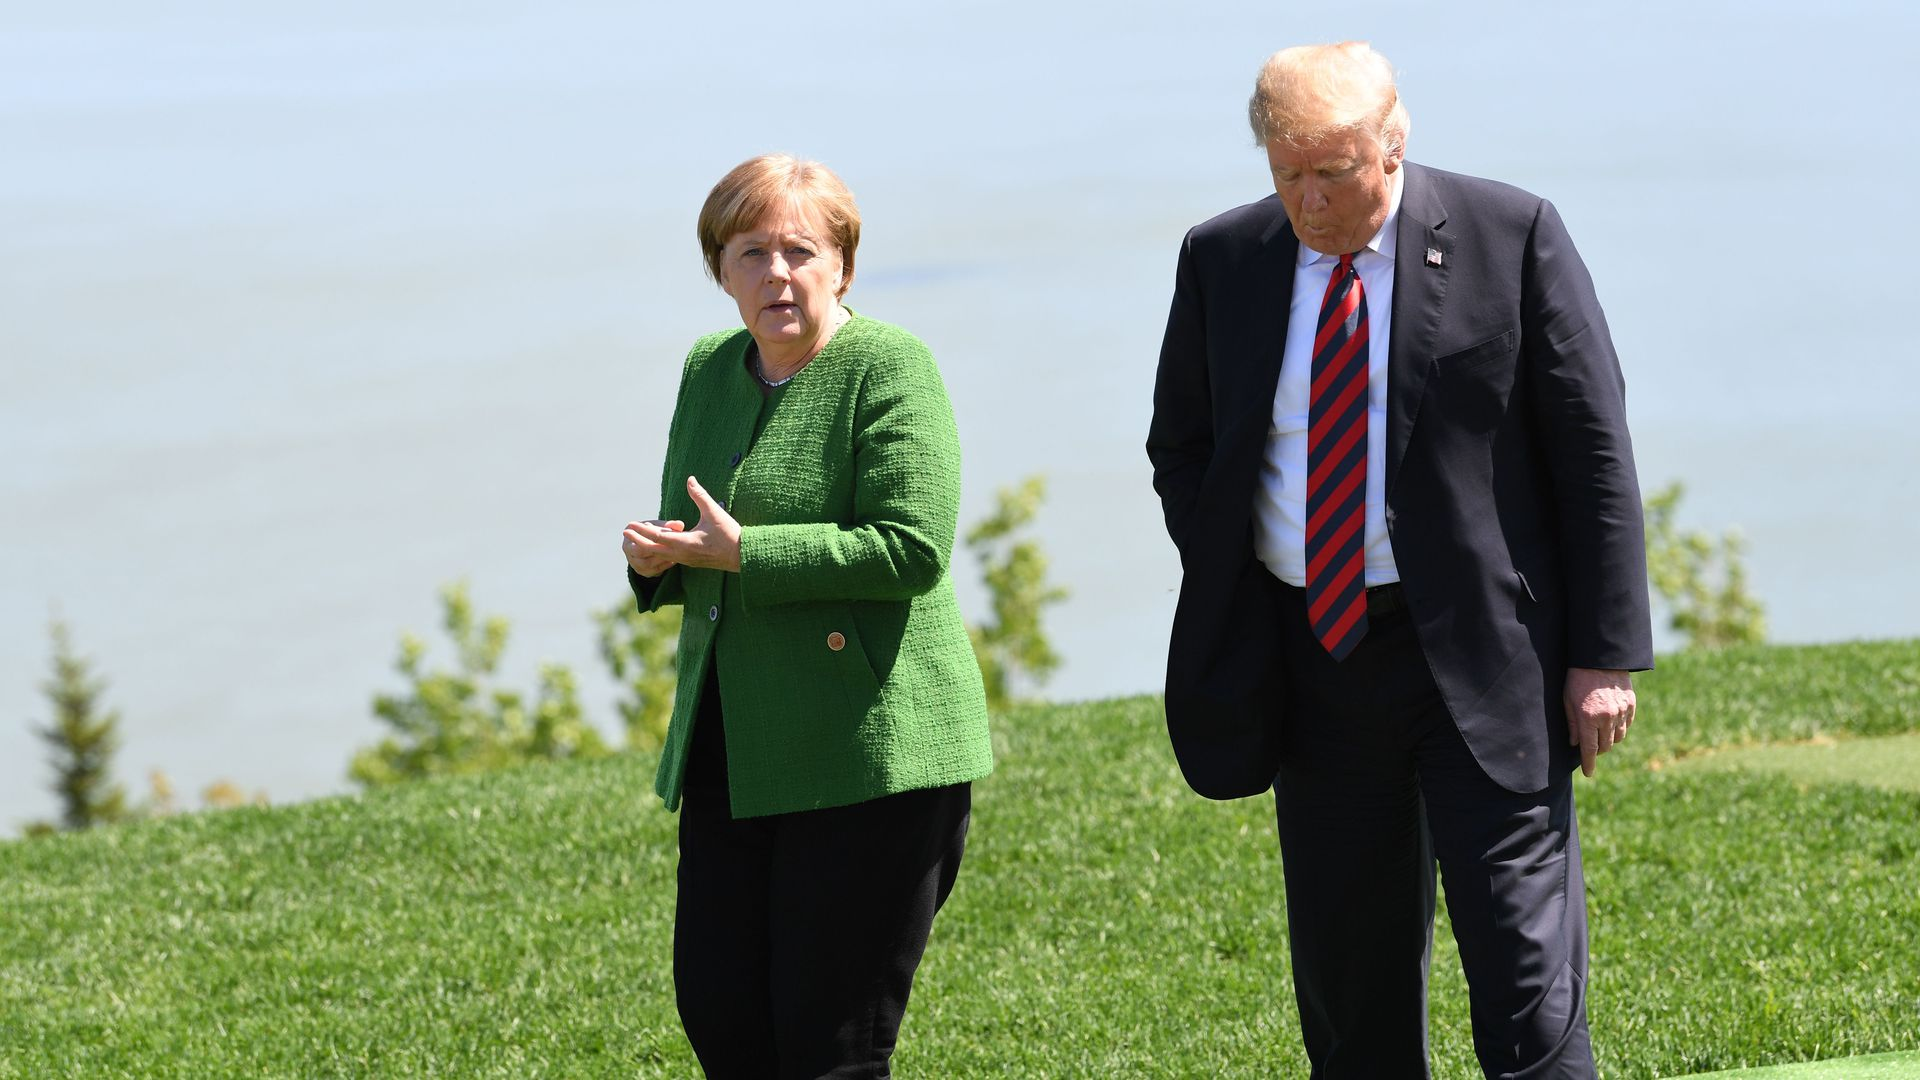 Angela Merkel in green and Trump in black walk on green grass looking serious before a body of water.